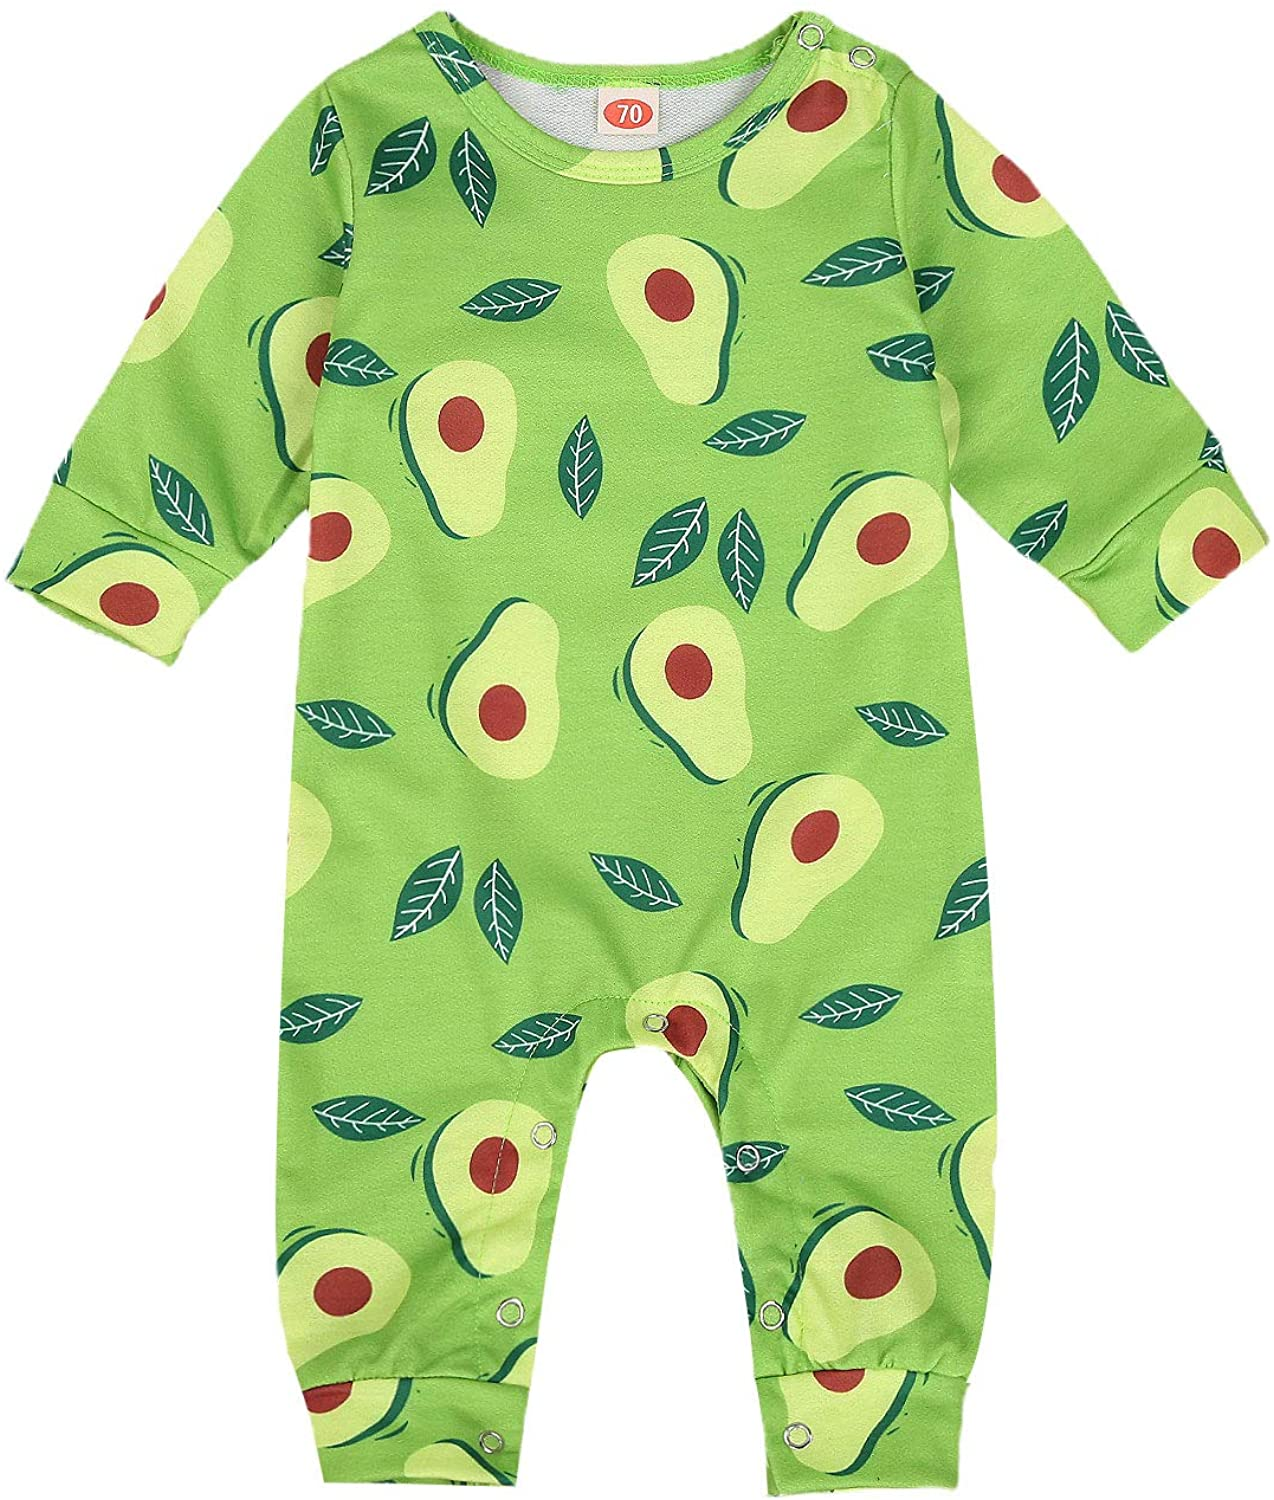 BroStrongwn Newborn Boy Baby Girl Clothes Infant Avocado Sleeveless Romper Jumpsuit Bodysuit Sunsuit Outfits